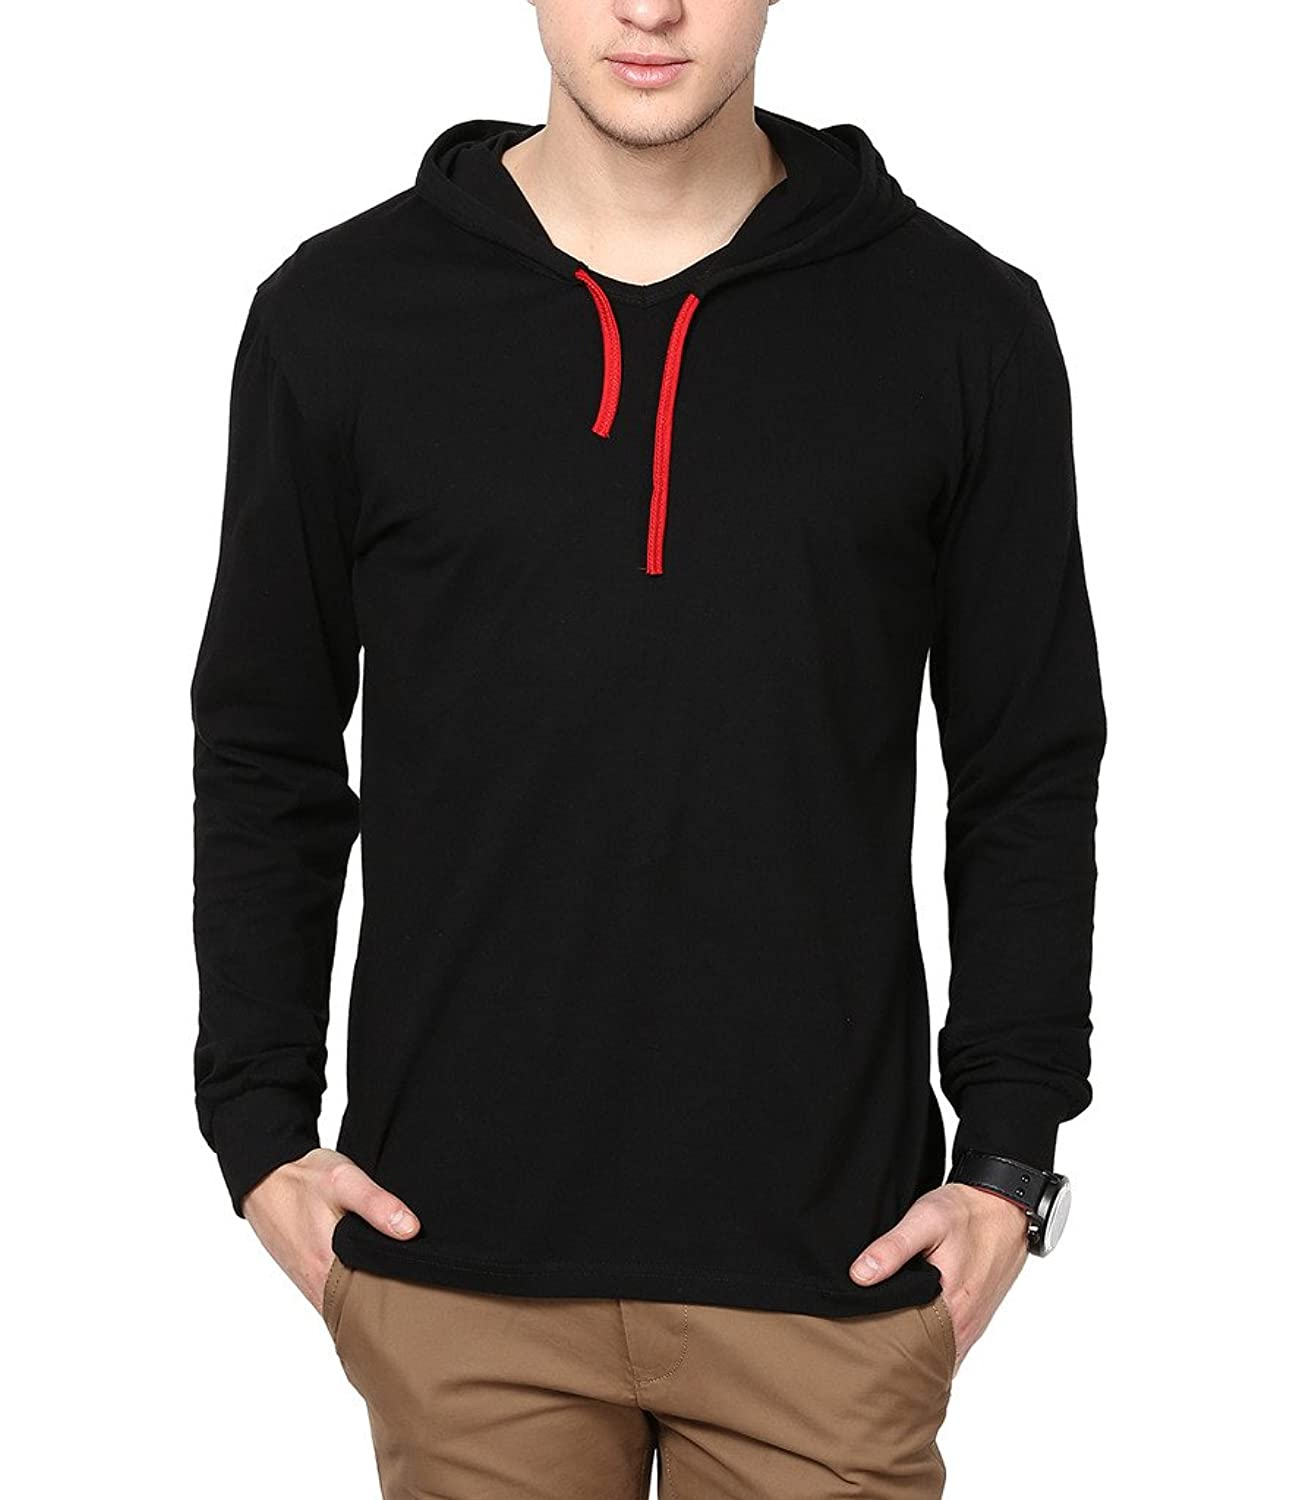 Black t shirt photo - Inkovy Full Sleeve Men S Cotton Hooded T Shirt Amazon In Clothing Accessories